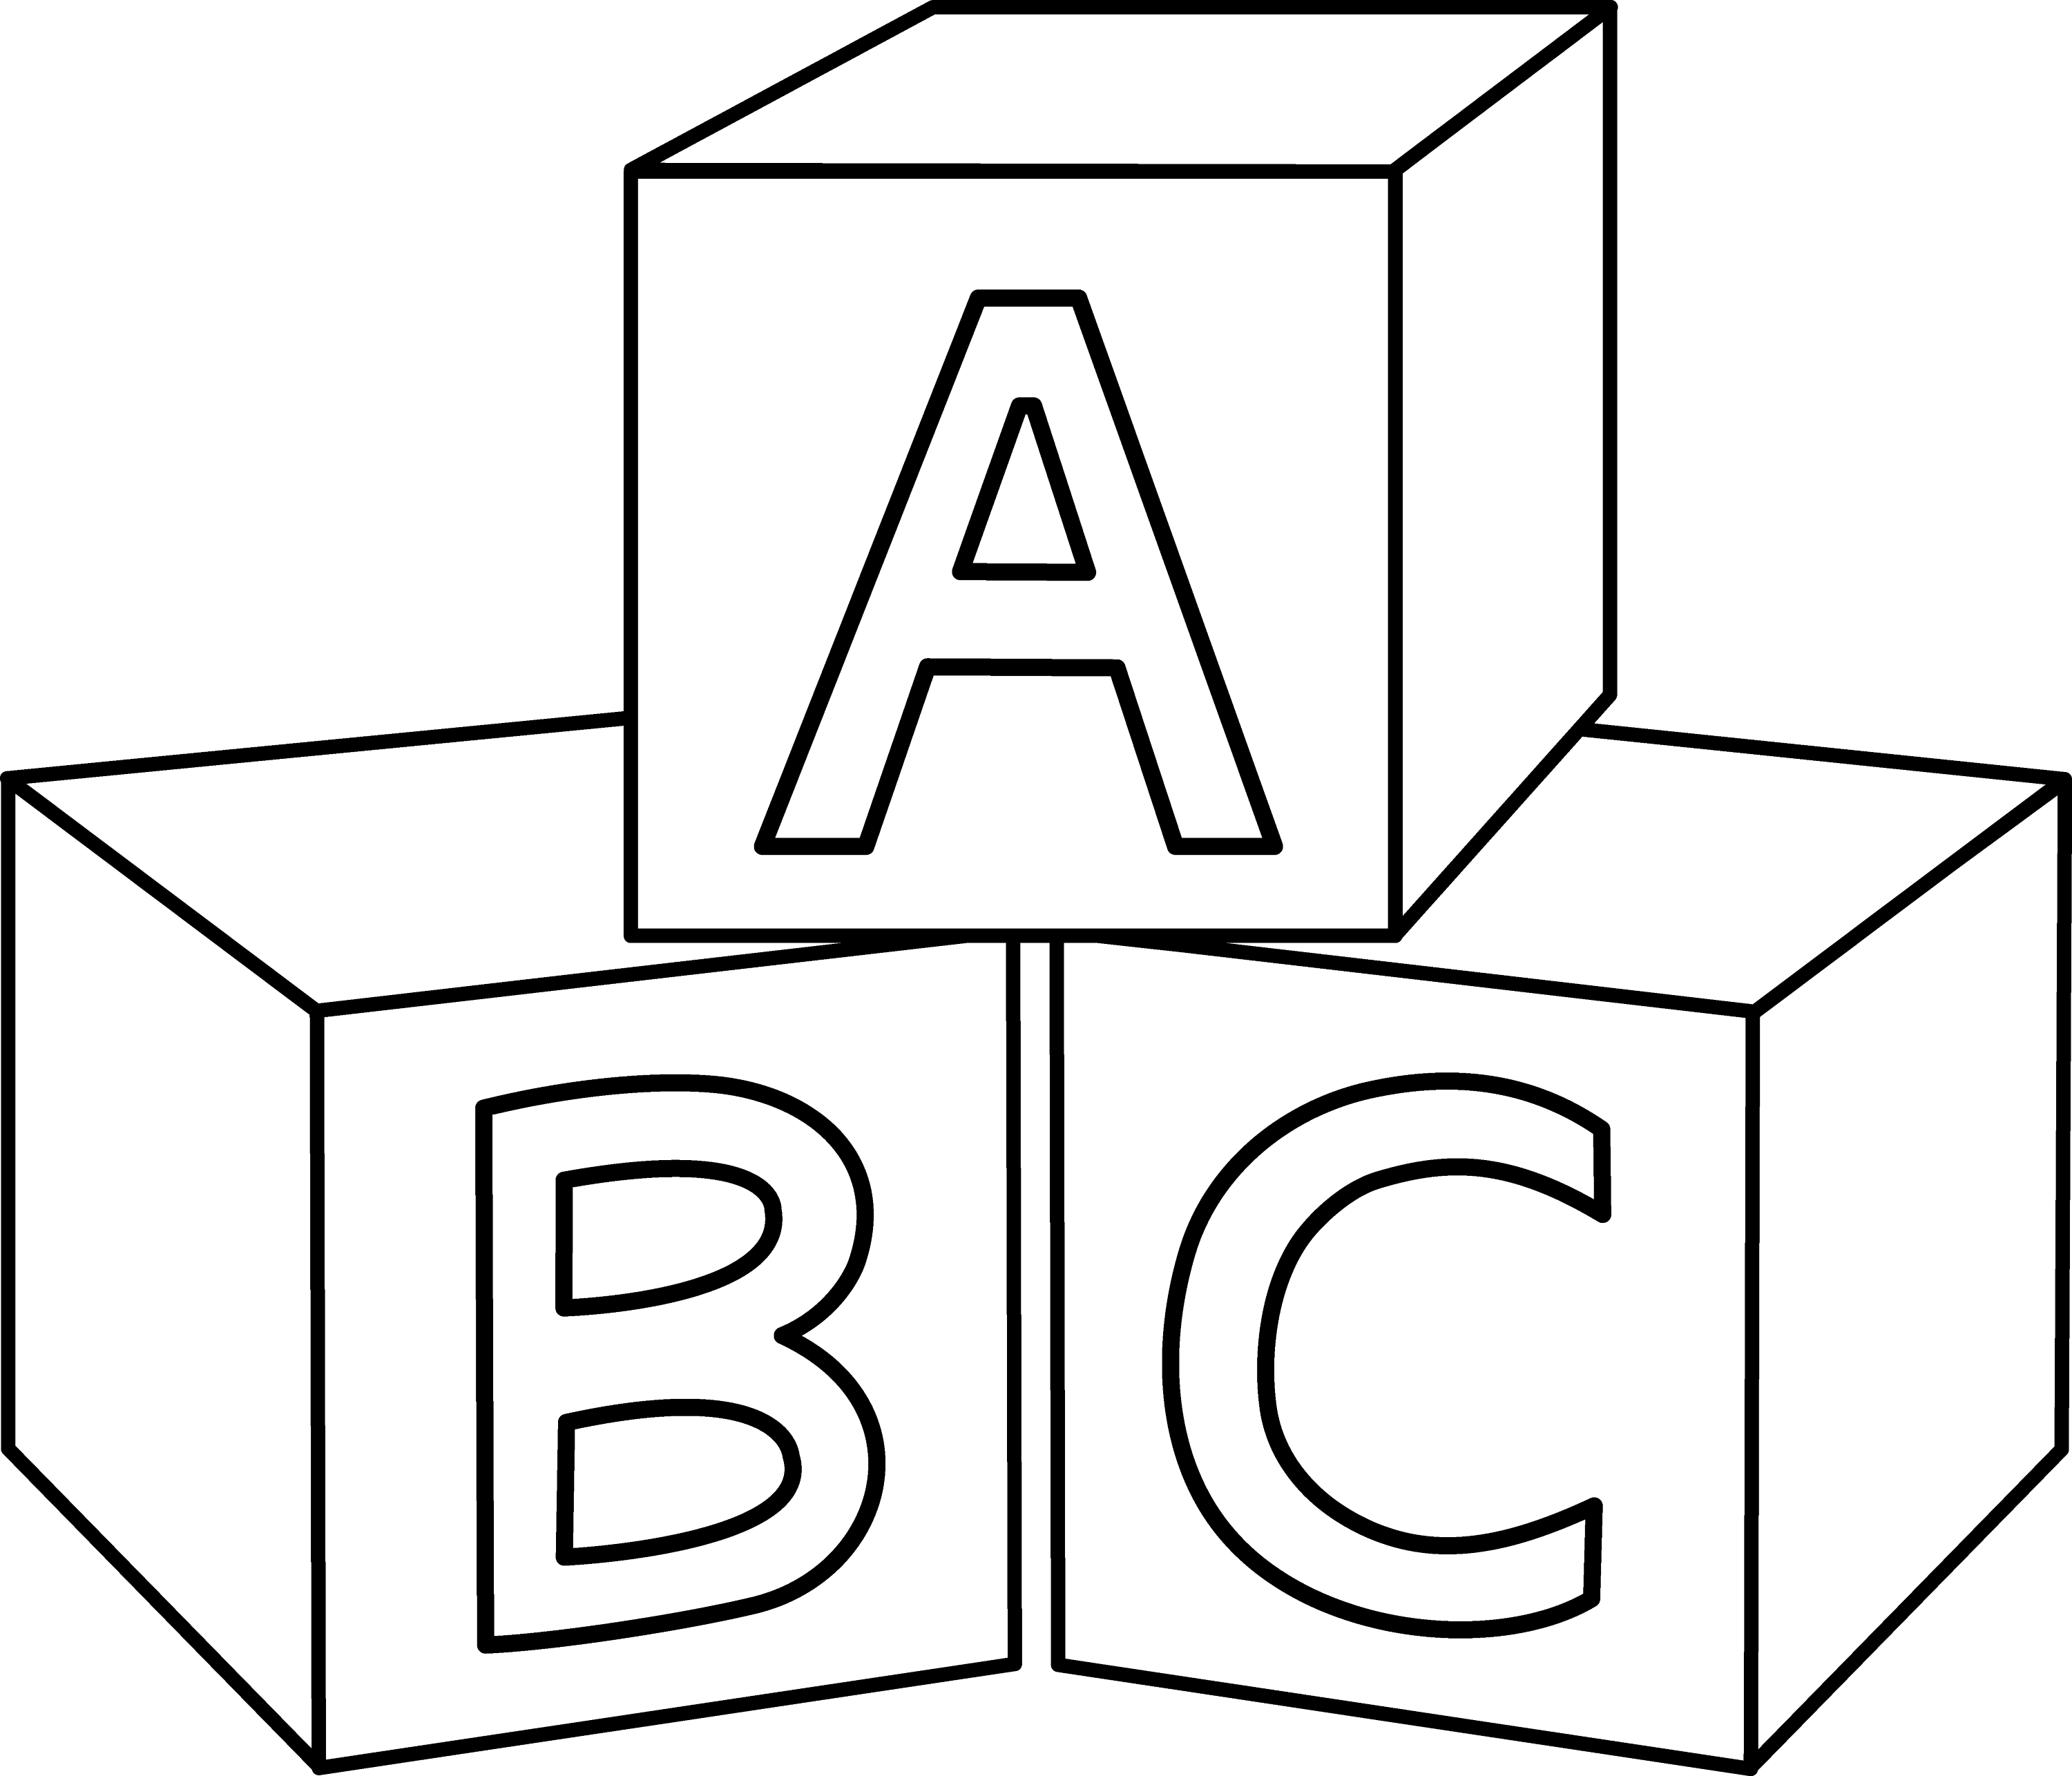 ABC Blocks Coloring Page - Free Clip Art